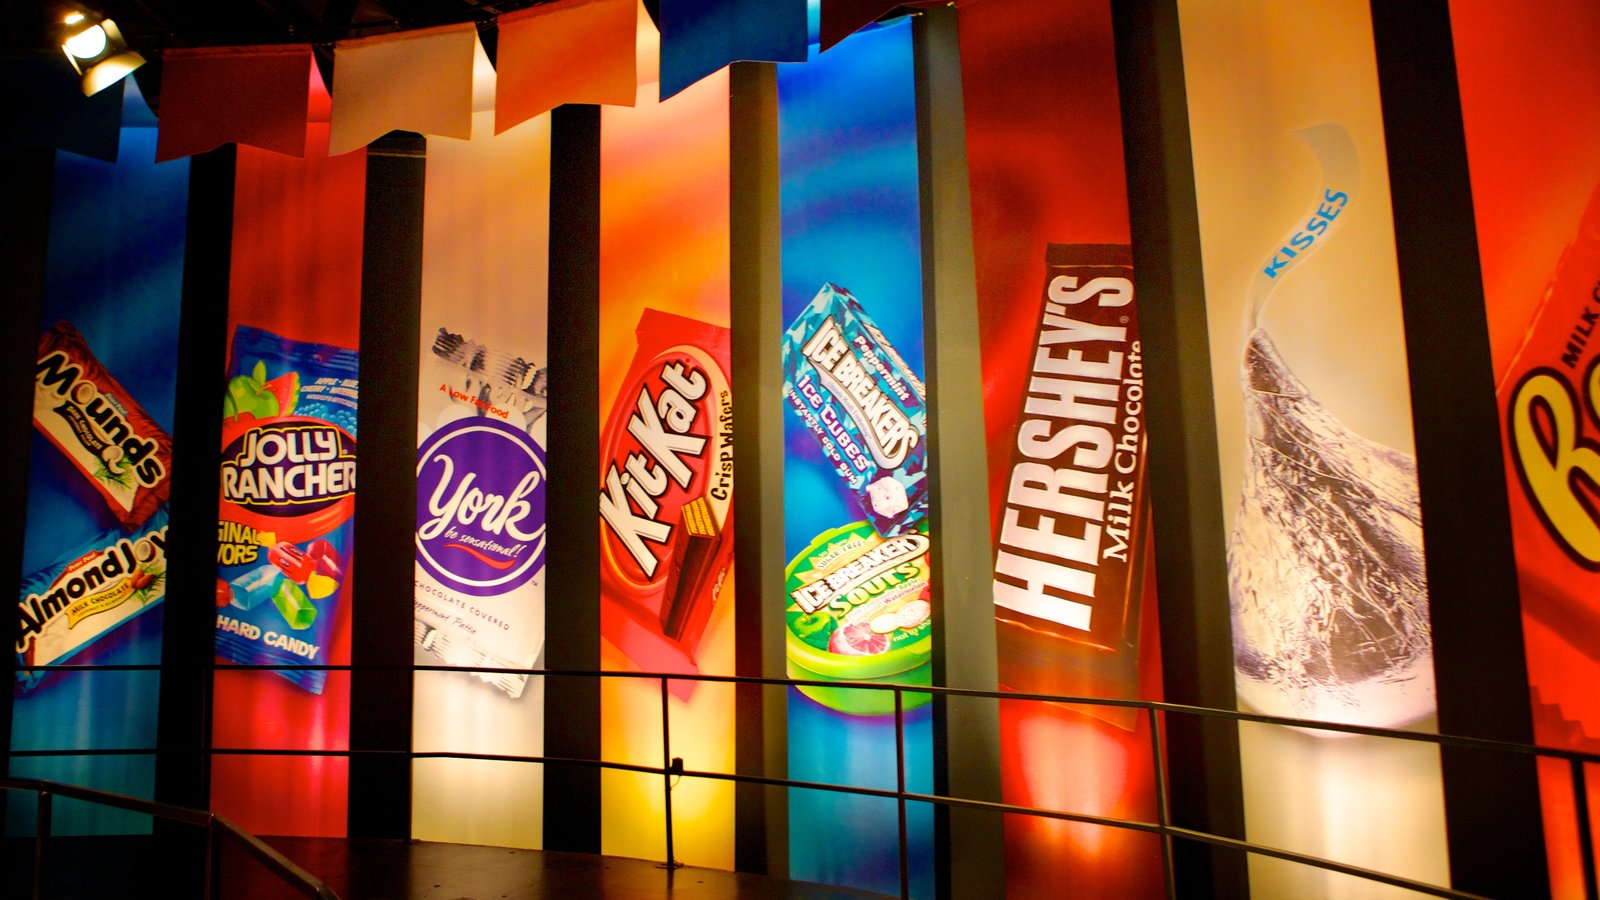 Attraction Pictures: View Images of Hershey's Chocolate World